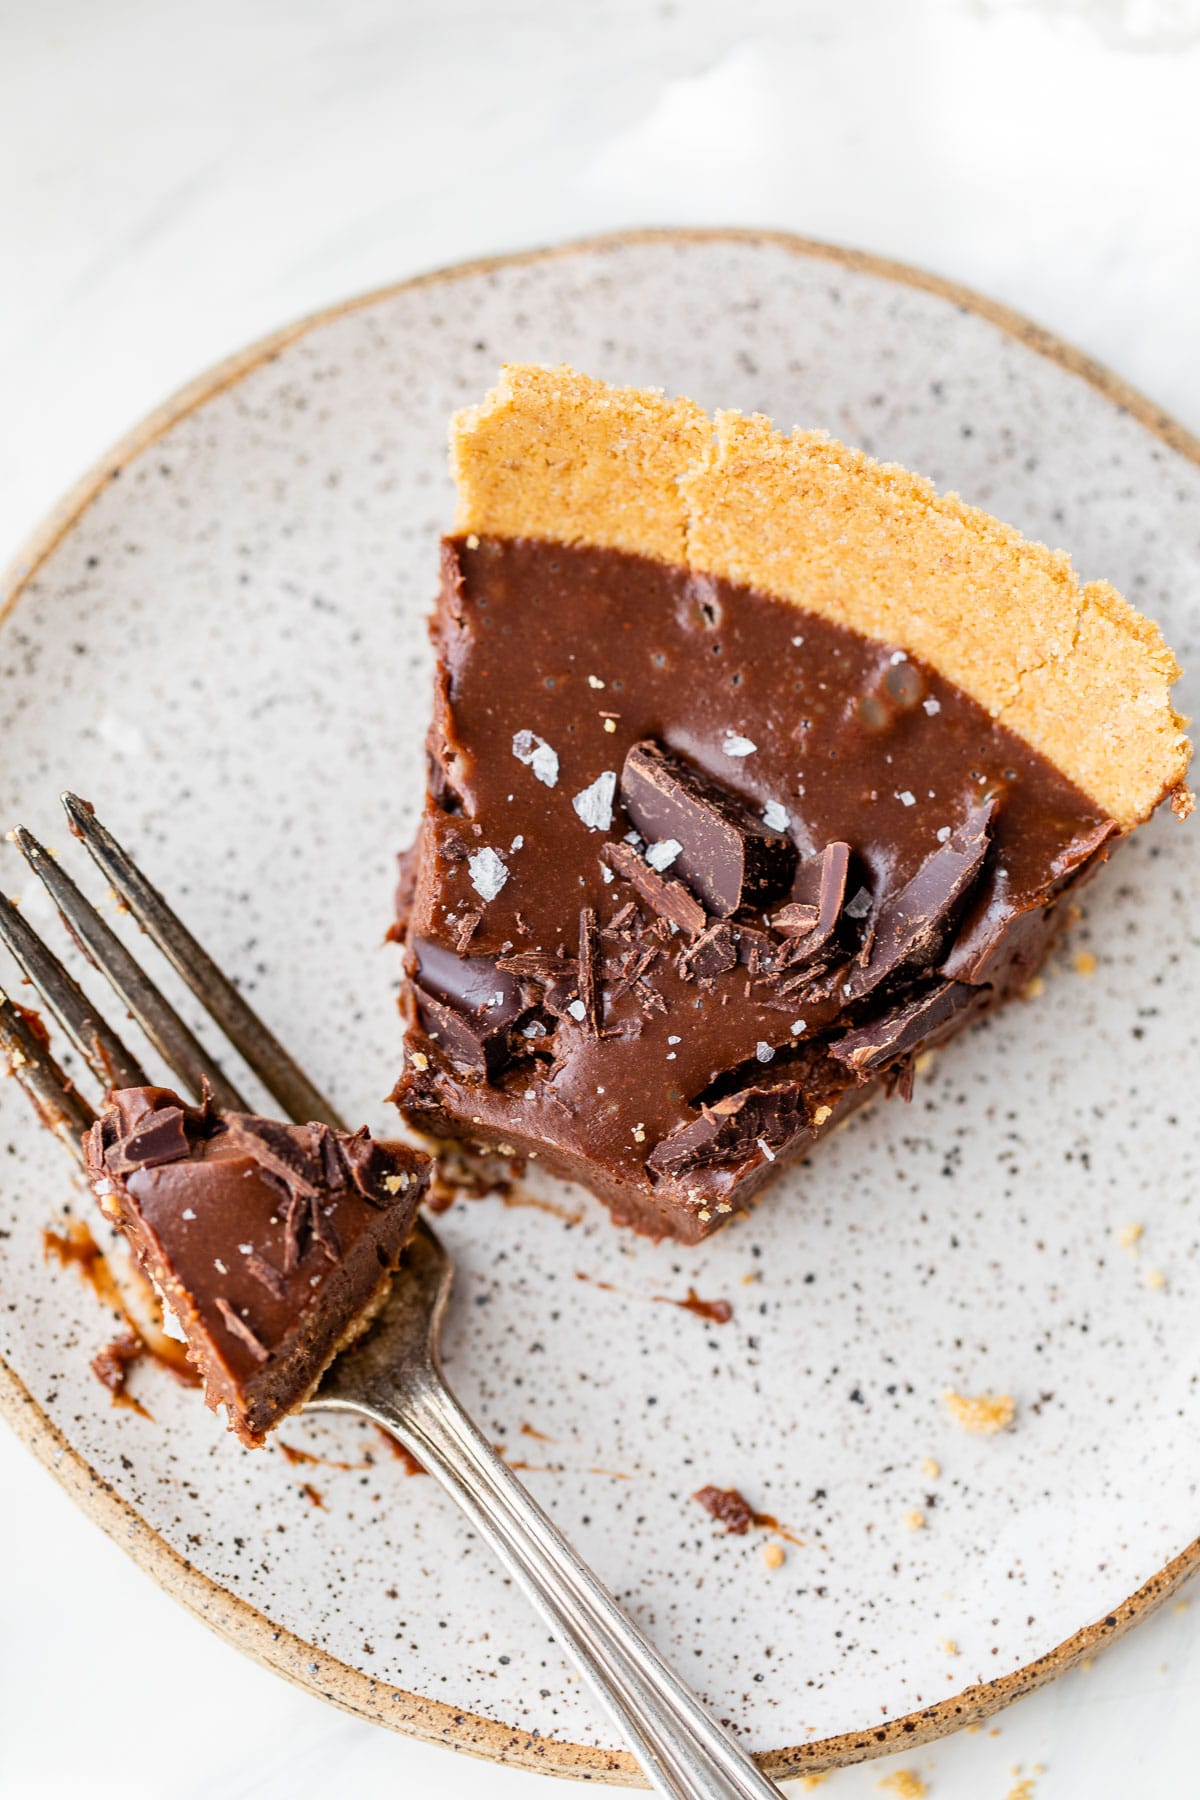 a slice of pie on a plate with a bite taken out of it